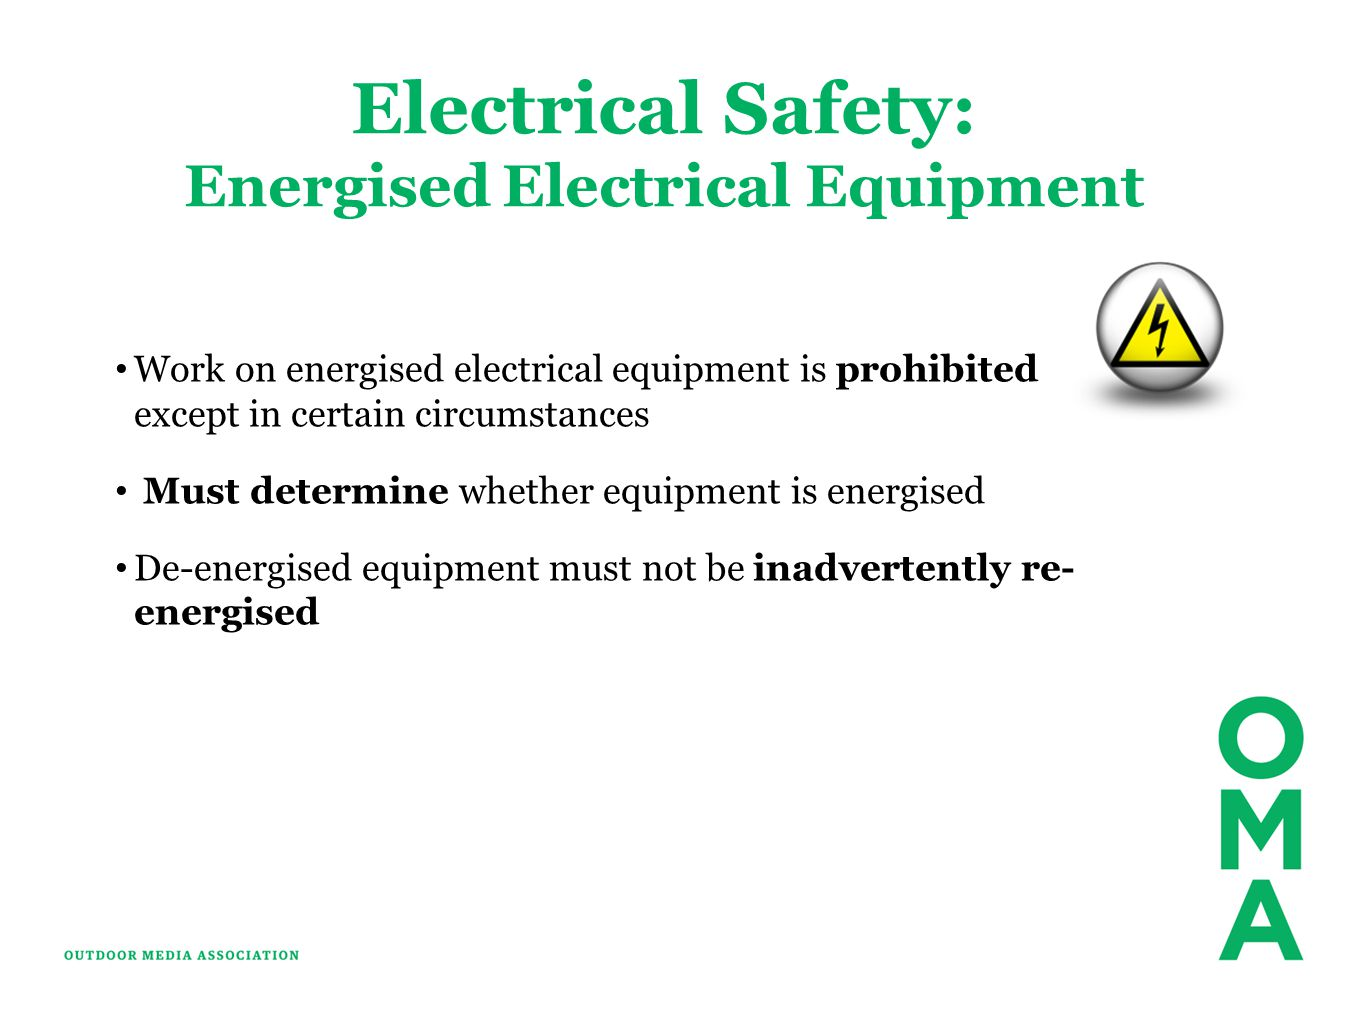 Electrical Safety: Energised Electrical Equipment Work on energised electrical equipment is prohibited except in certain circumstances Must determine whether equipment is energised De-energised equipment must not be inadvertently re- energised